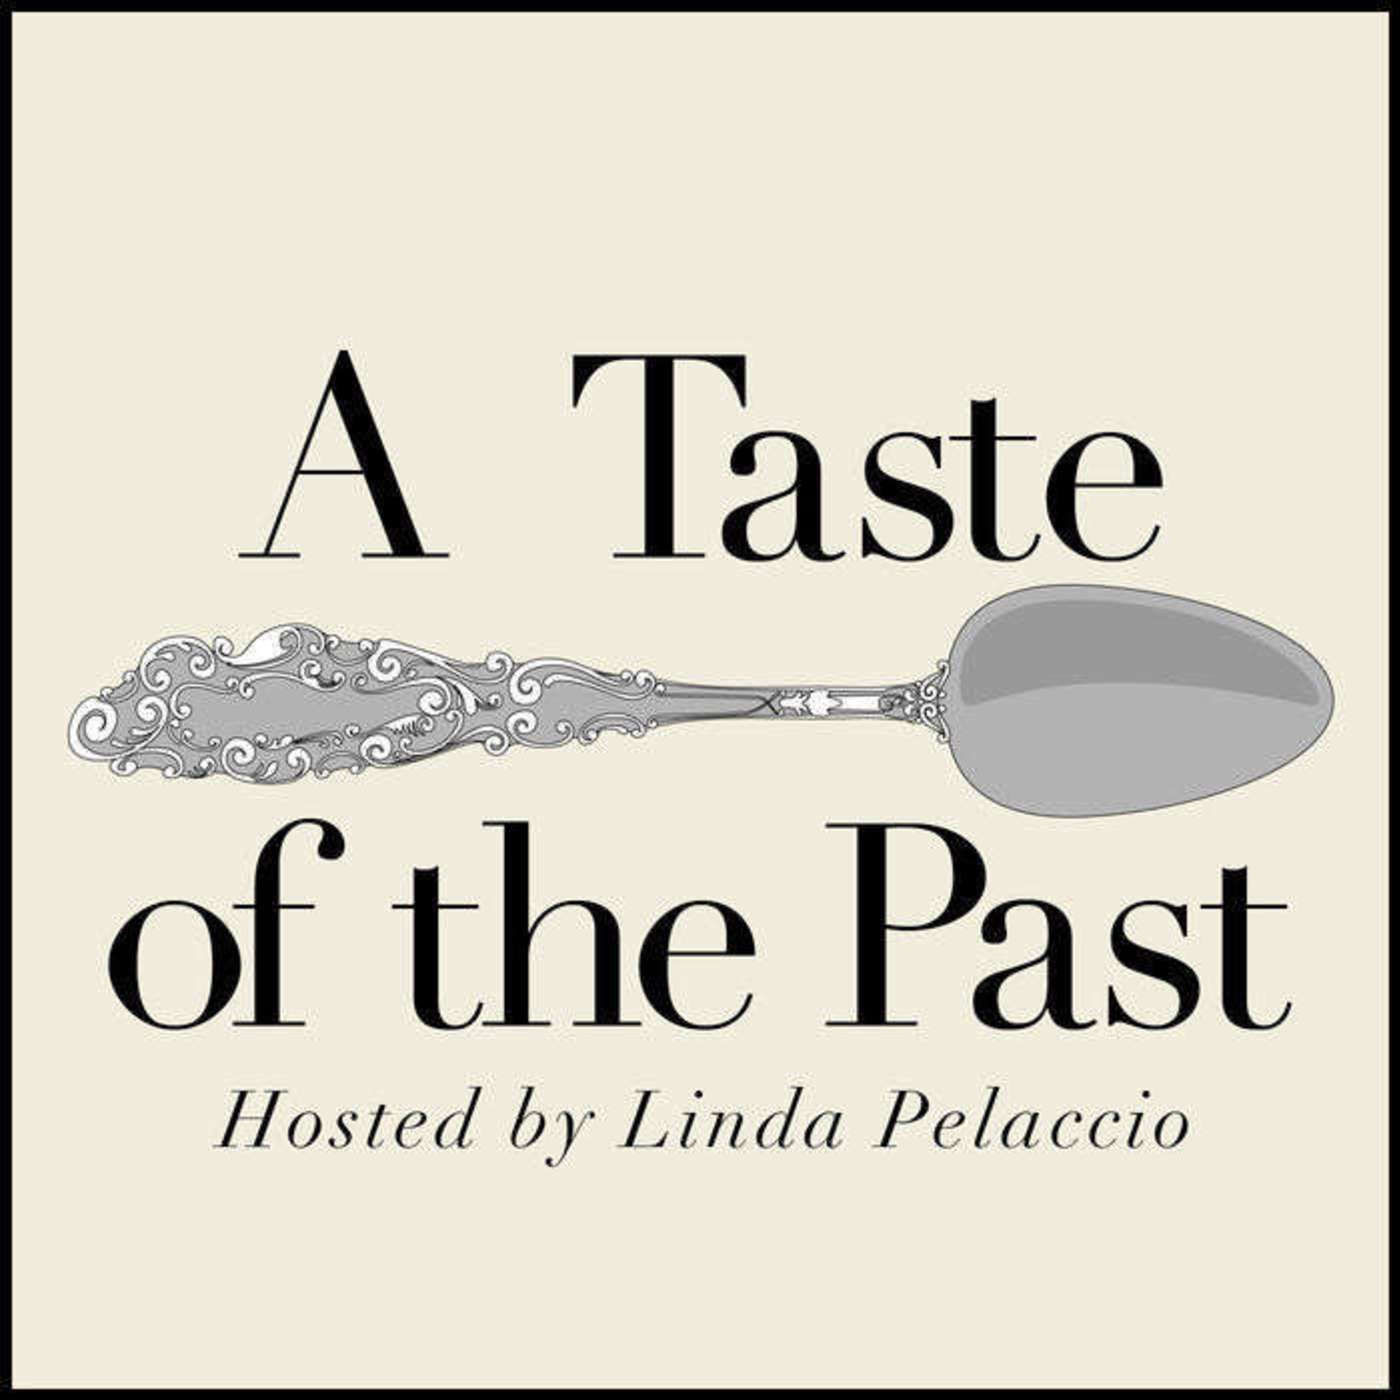 Episode 68: What is That thing? Antique Cooking Utensils